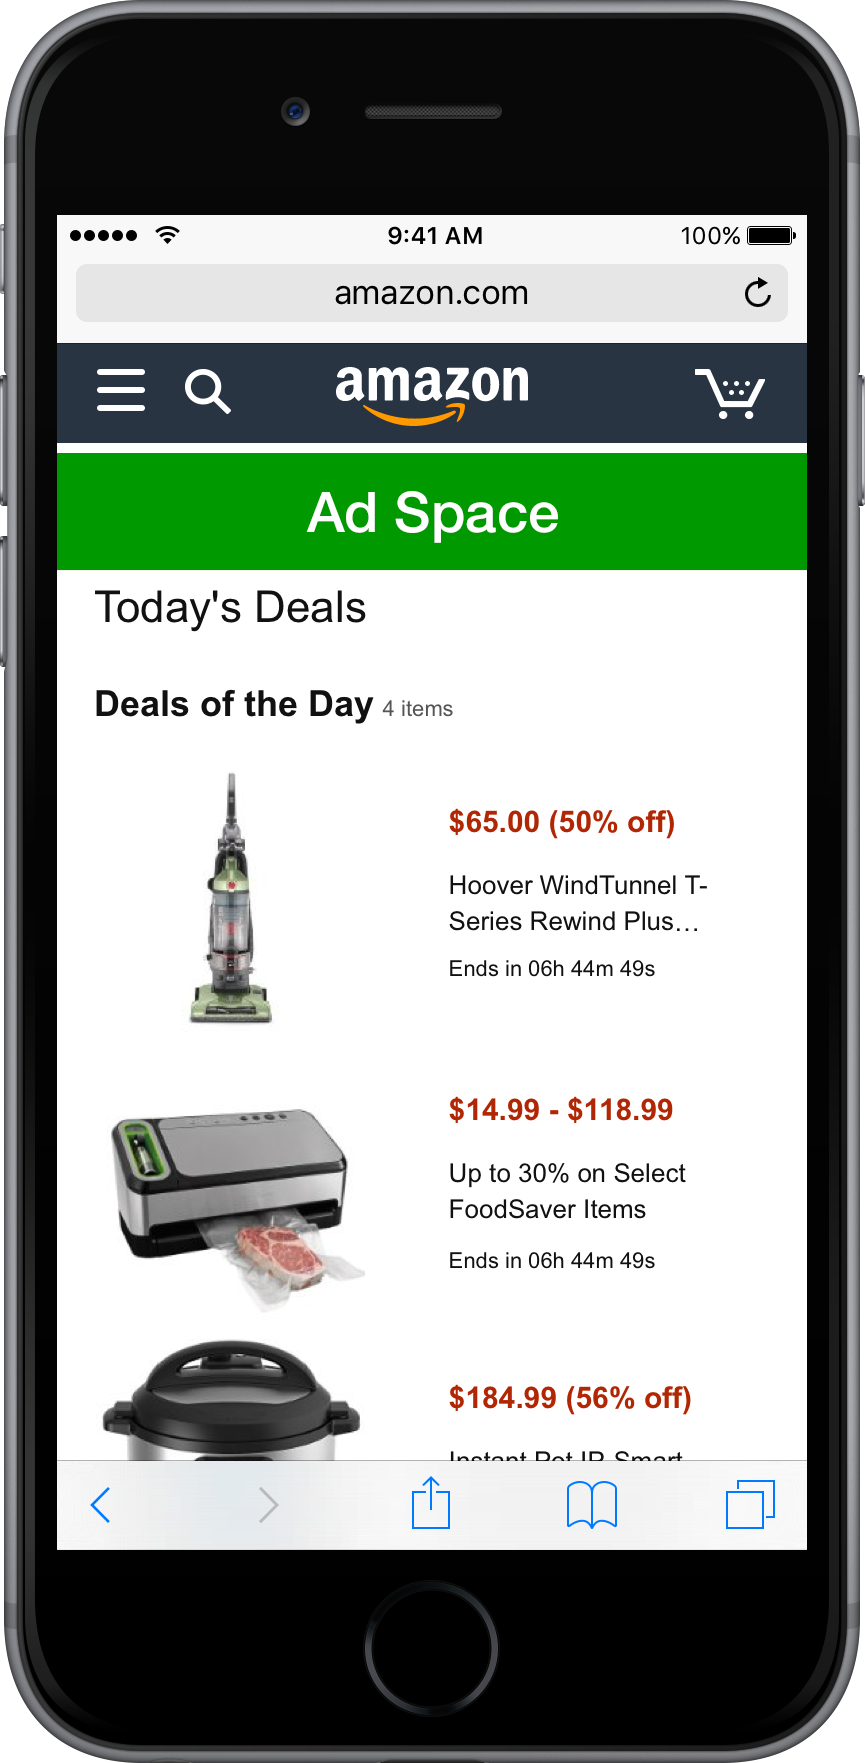 Mobile Web Deals Page 640 x 100 px